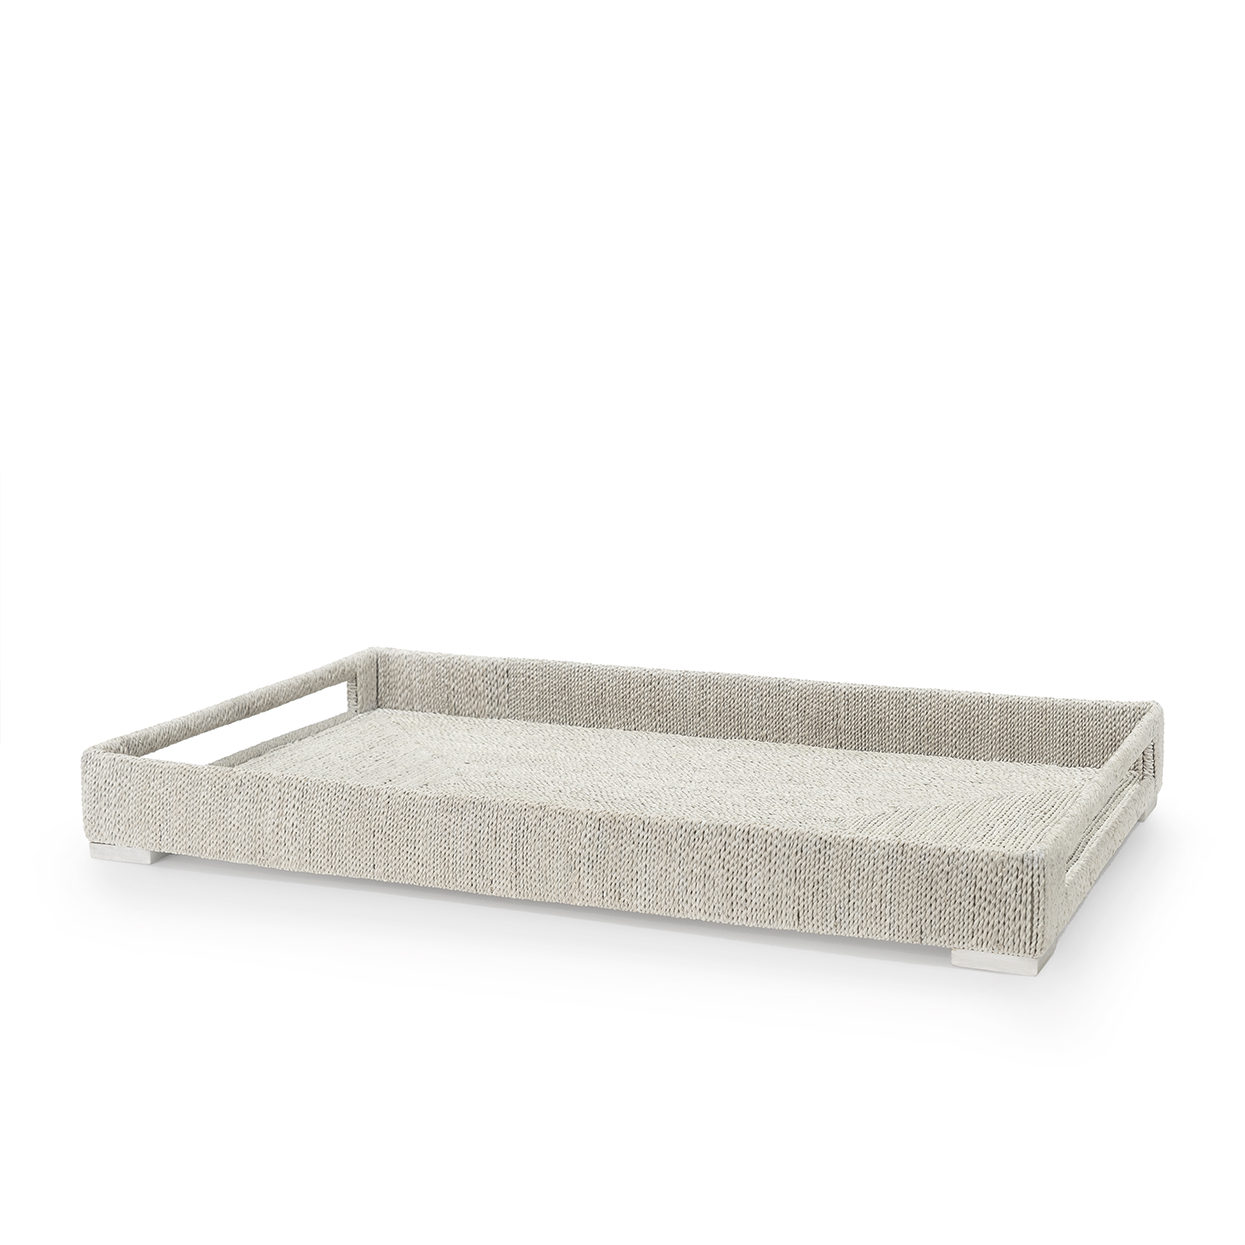 Rectangular Woven Seagrass Rope Tray White  Large   30x18x3.5h   P387103  Small   27x15x3.5h   P387203